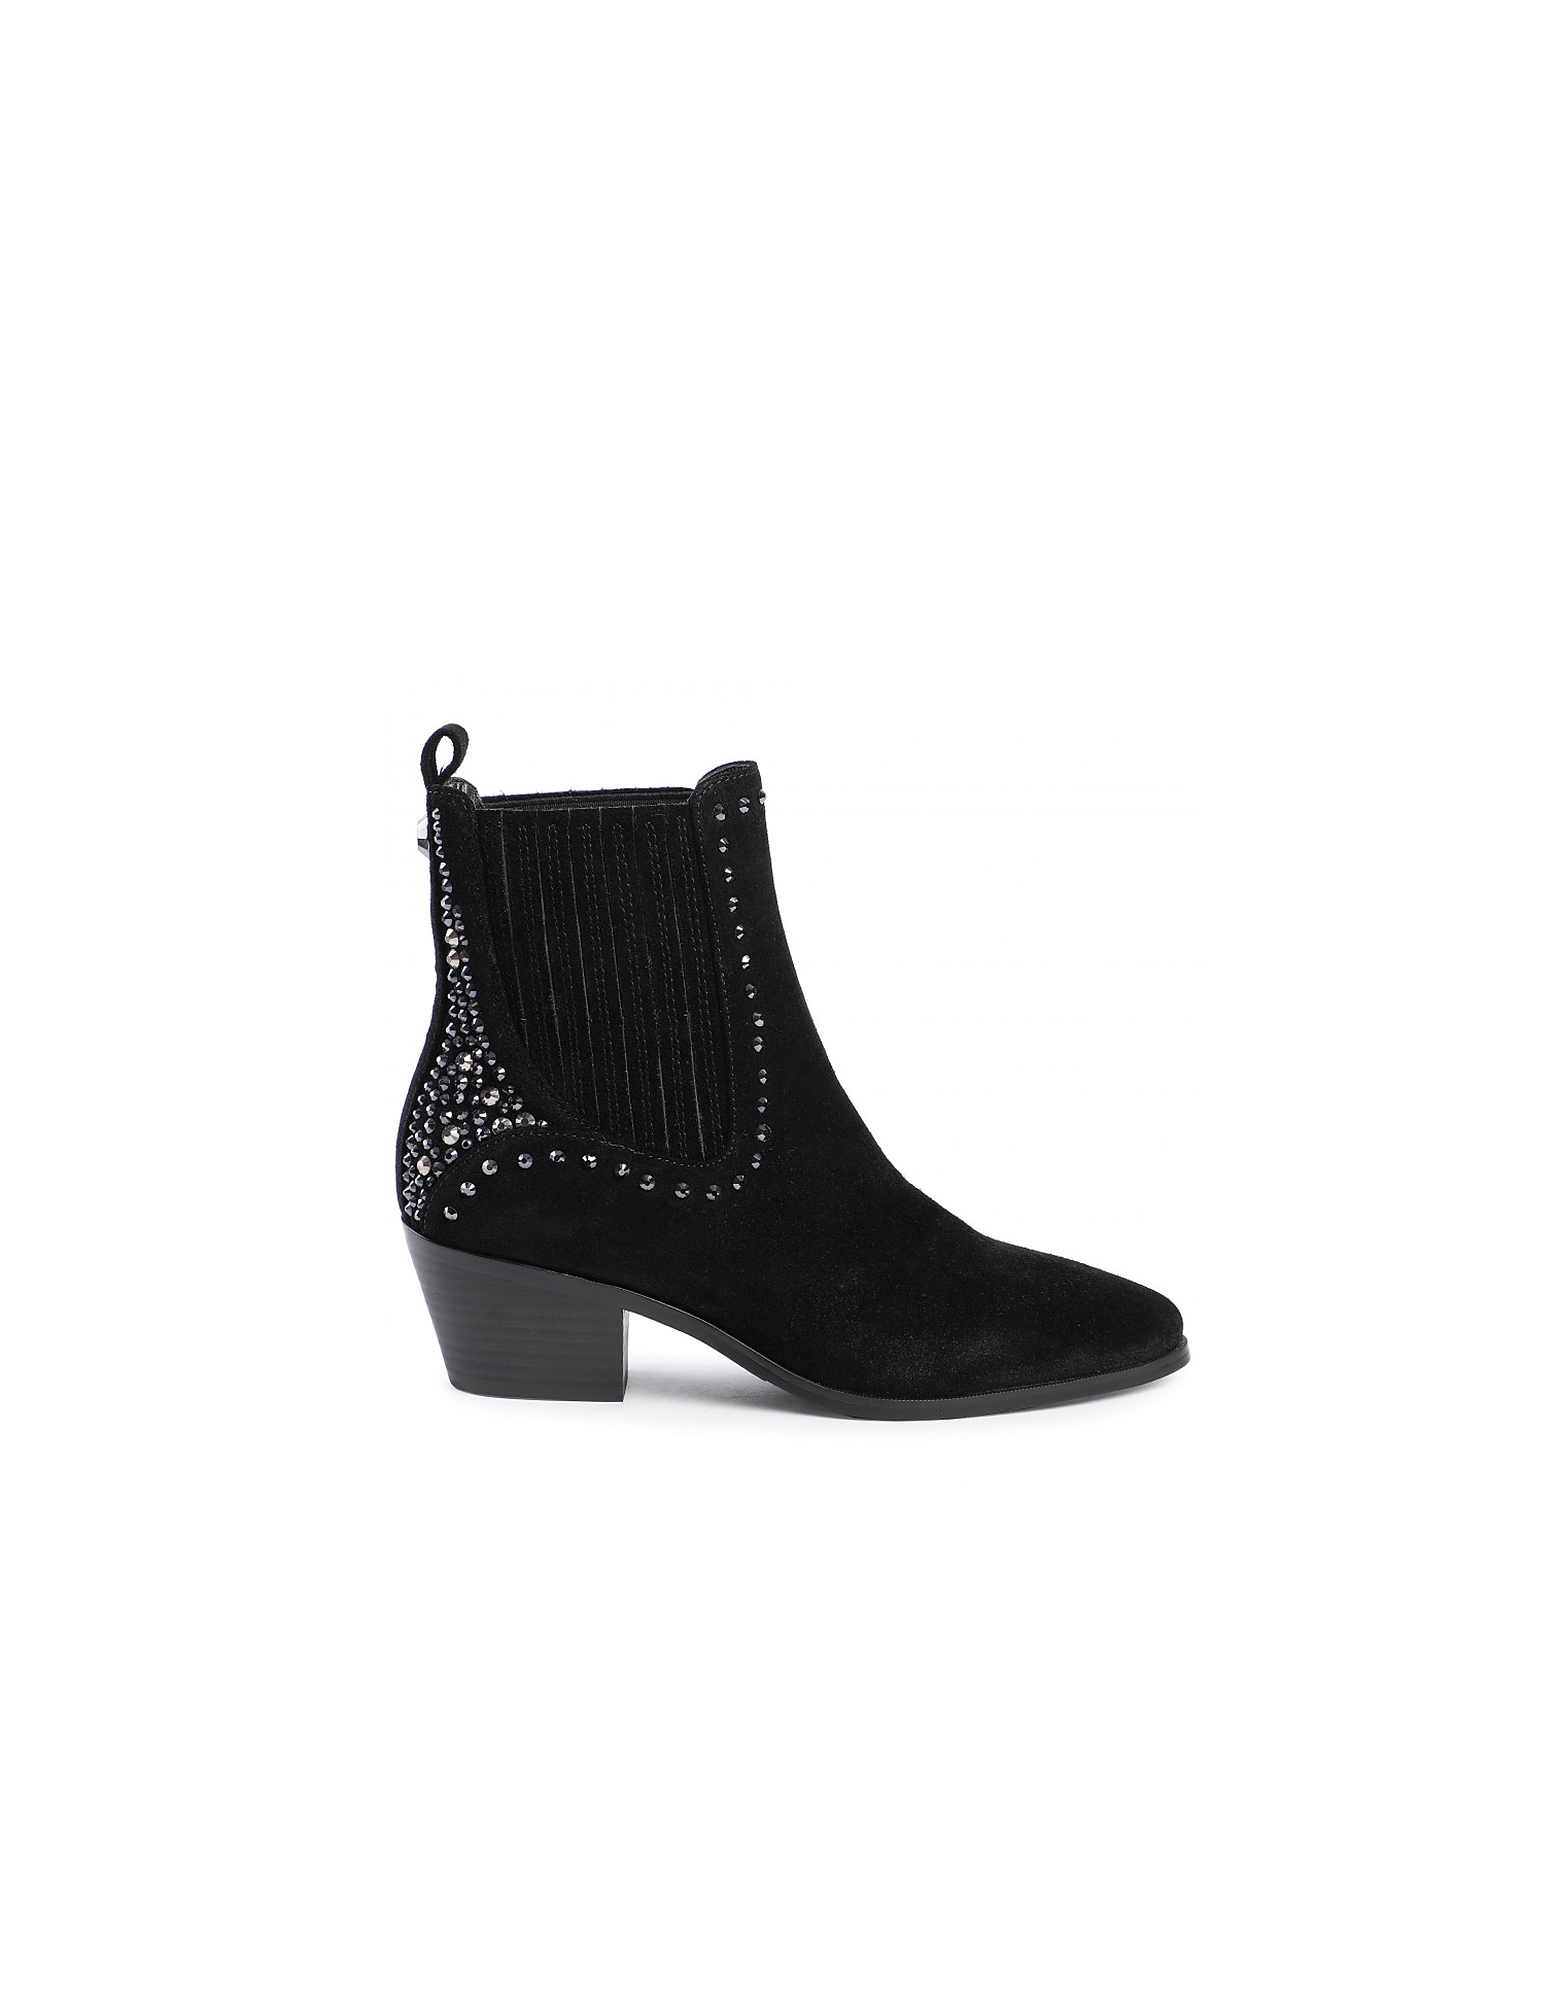 Liu Jo Designer Shoes, Women's Black Shoes